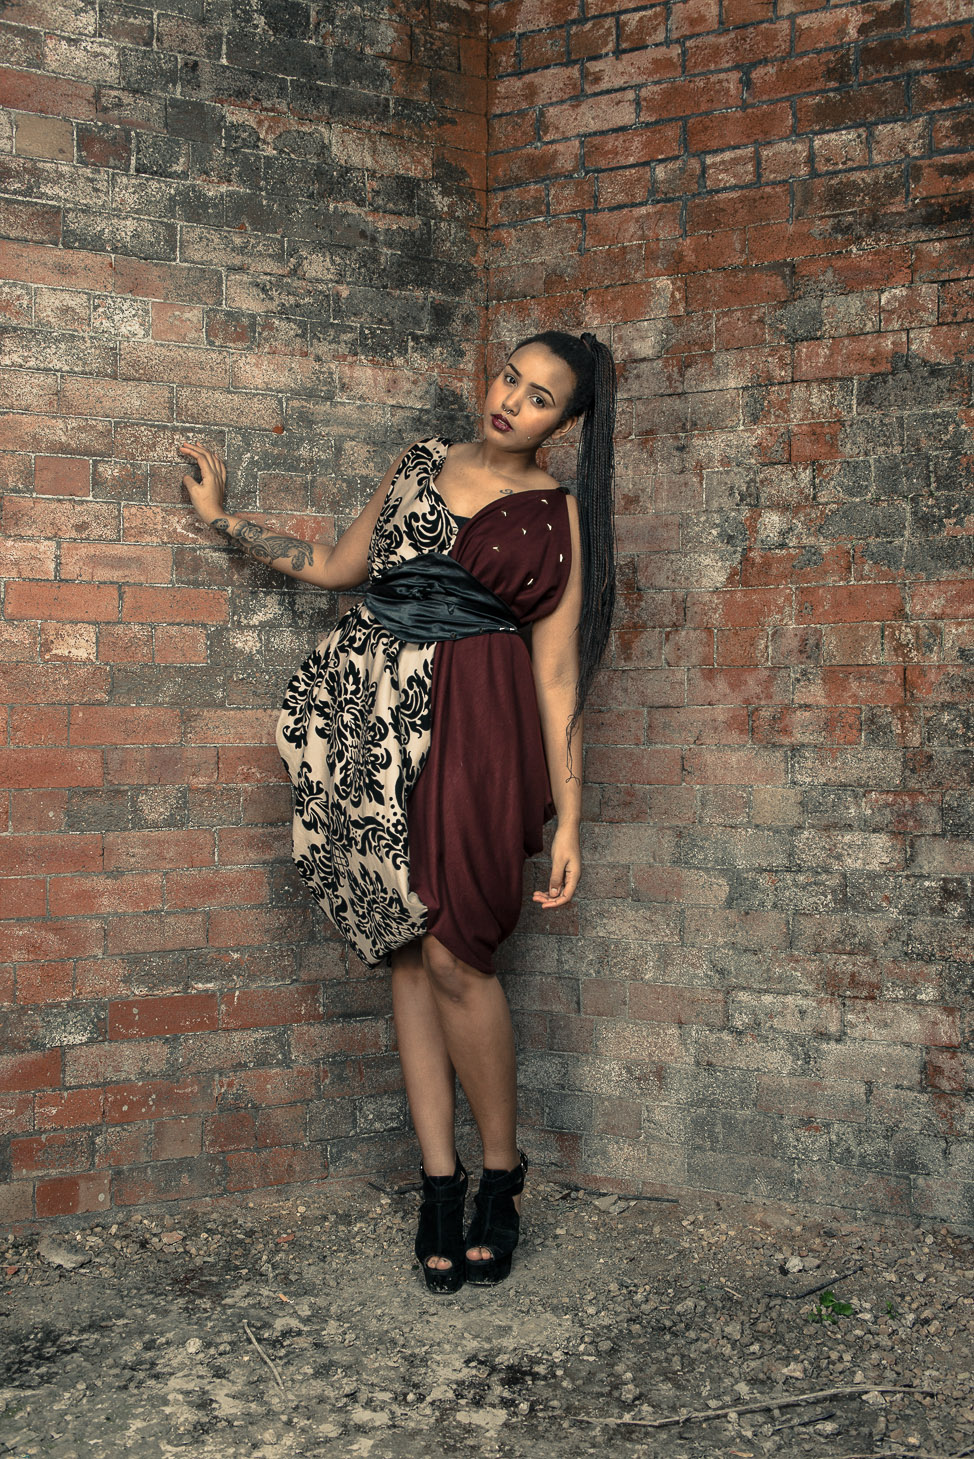 zaramia-ava-zaramiaava-leeds-fashion-designer-ethical-sustainable-tailored-minimalist-burgundy-versatile-drape-dress-damask-studding-belt-wrap-cowl-styling-bodysuit-womenswear-models-photoshoot-8